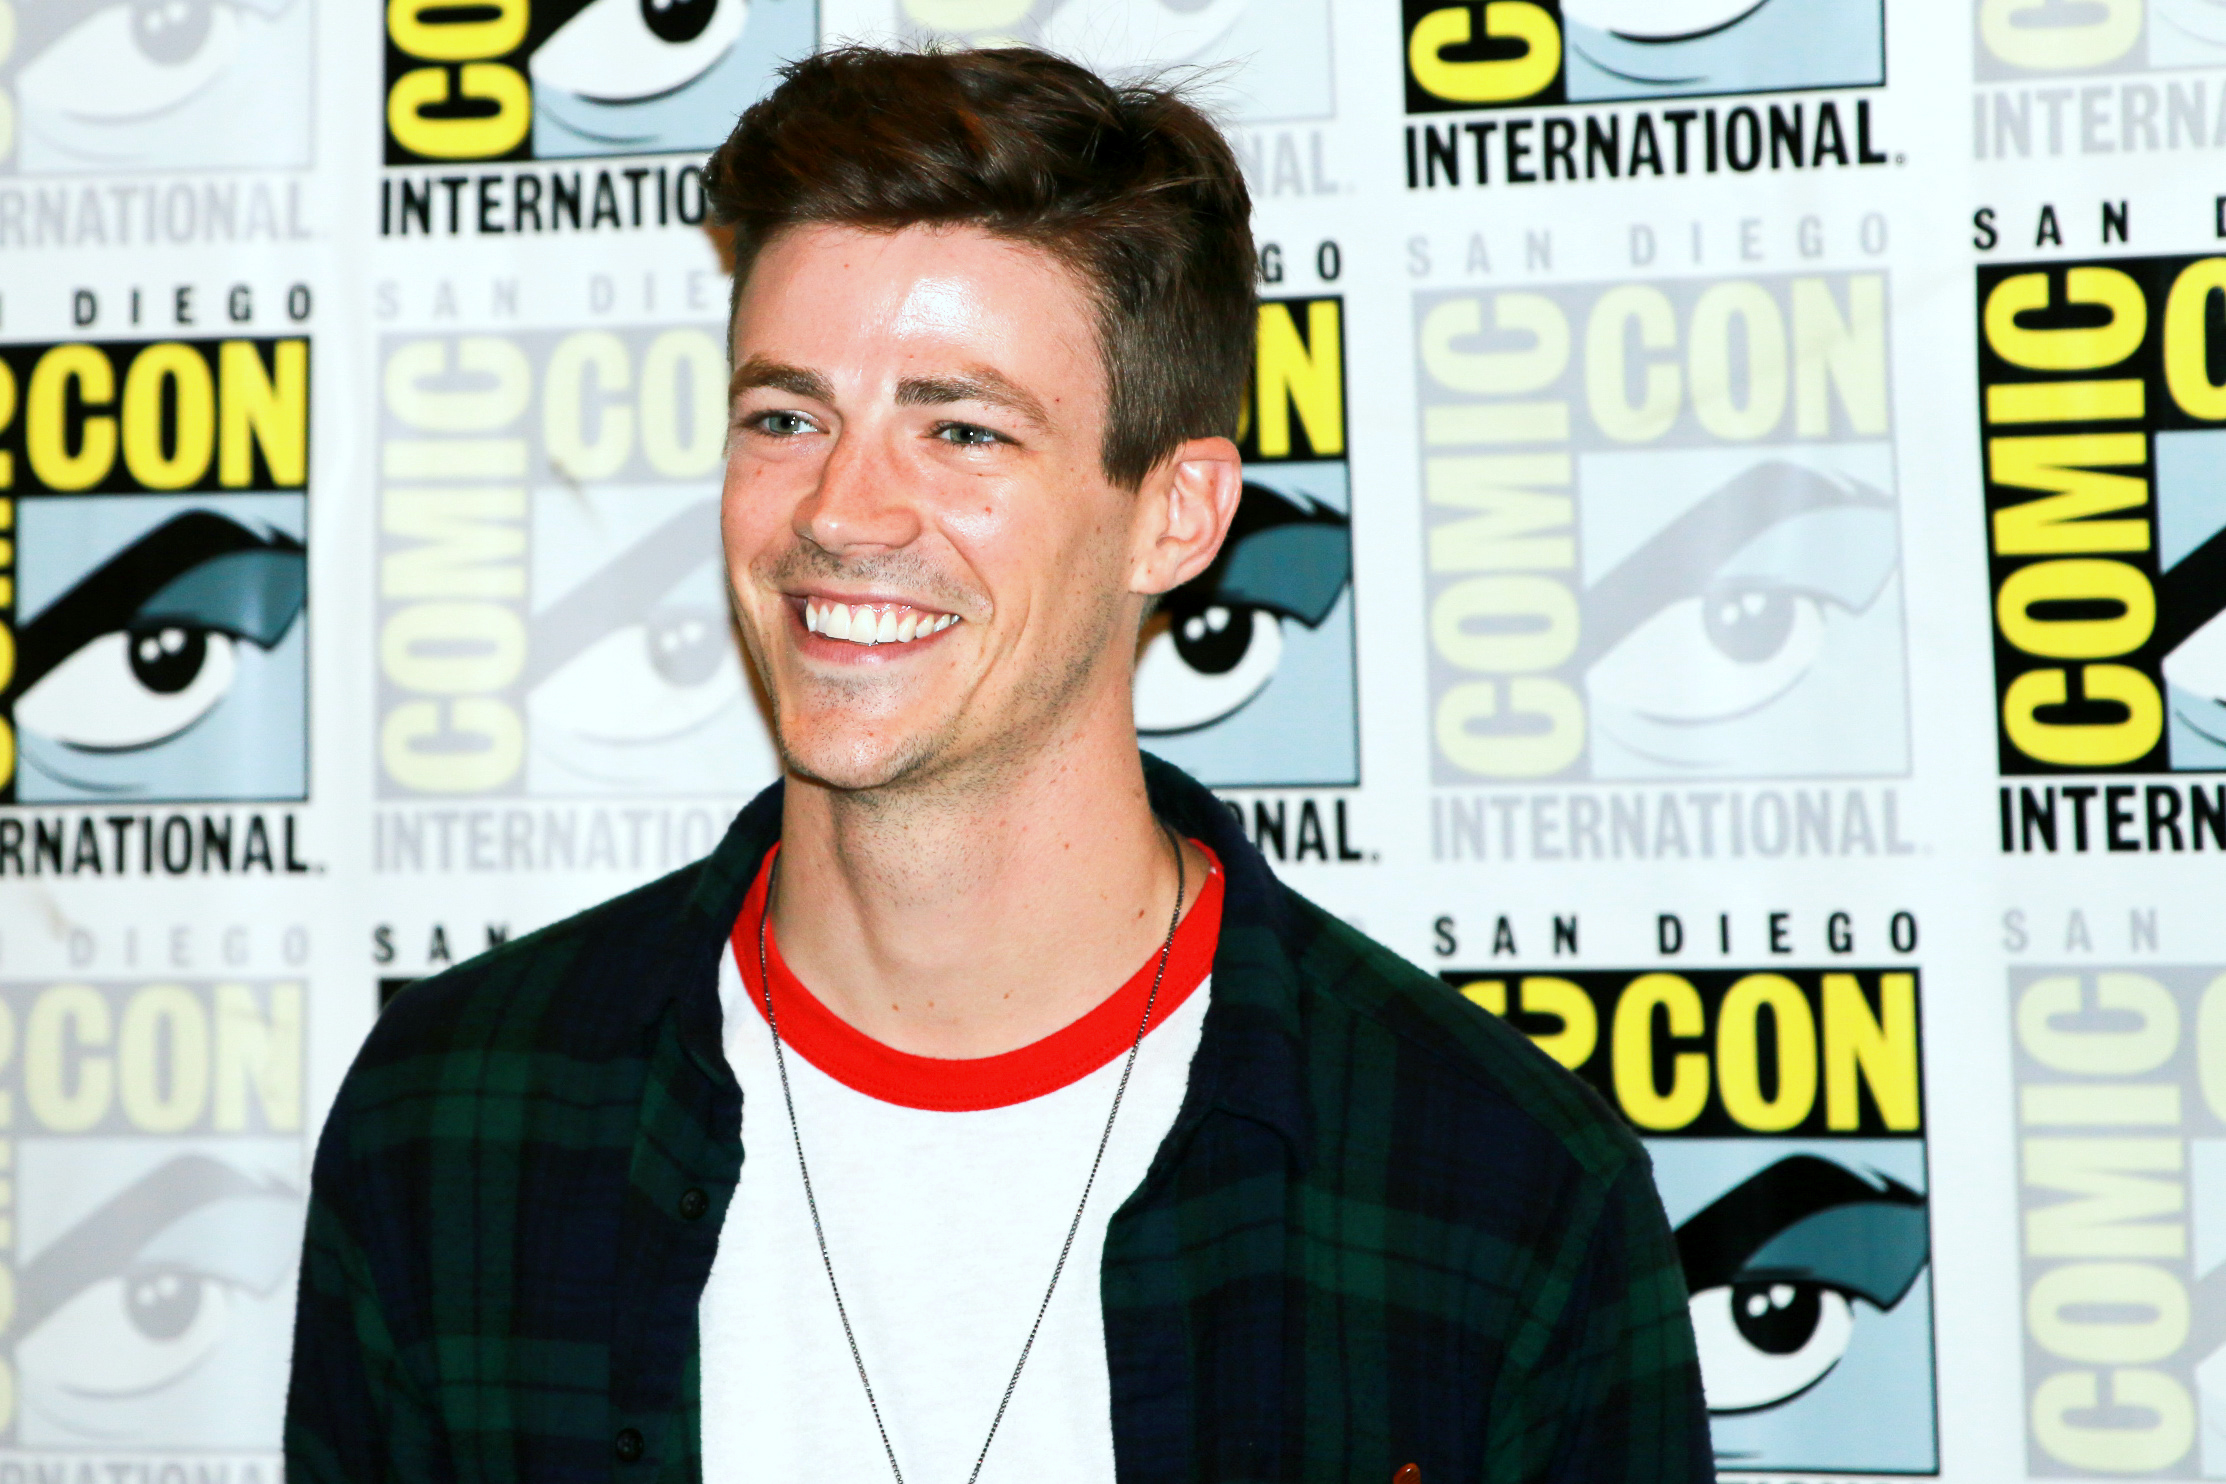 Grant Gustin at SDCC 2018. Credit: Alyssa Rasmus/Pink Camera Media